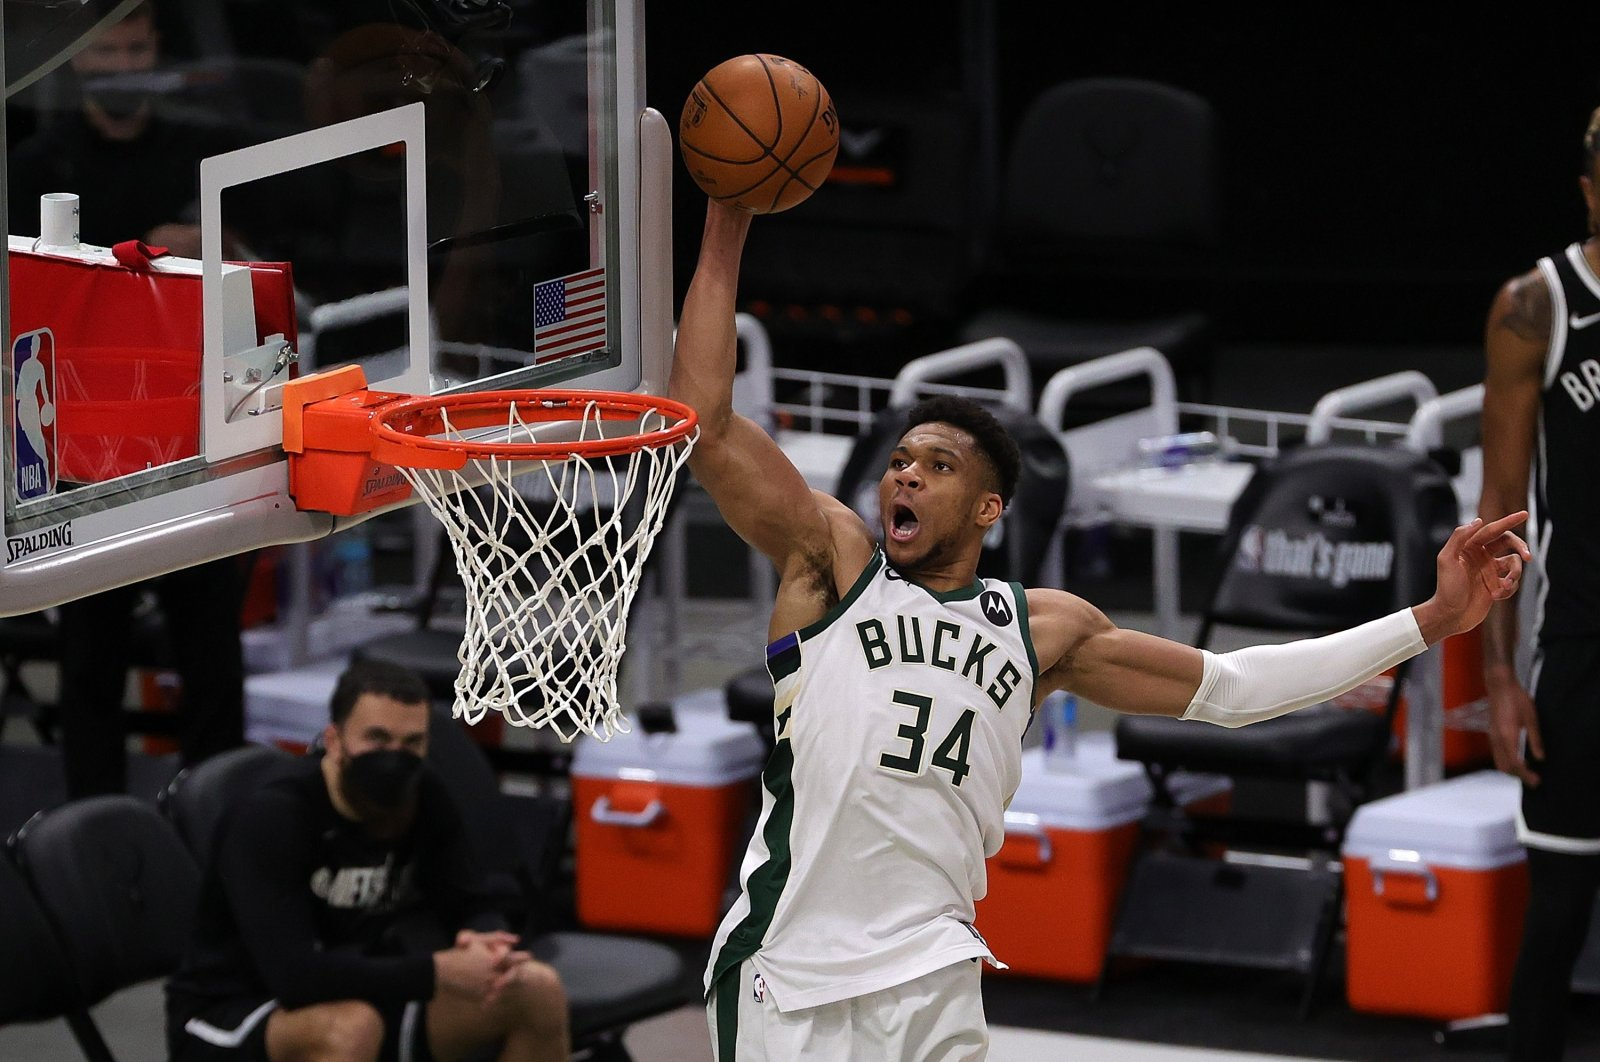 Milwaukee Bucks' Giannis Antetokounmpo dunks against the Brooklyn Nets during the second half of Game 4 of the Eastern Conference second-round playoff series at the Fiserv Forum, Milwaukee, Wisconsin, U.S., June 13, 2021. (AFP Photo)